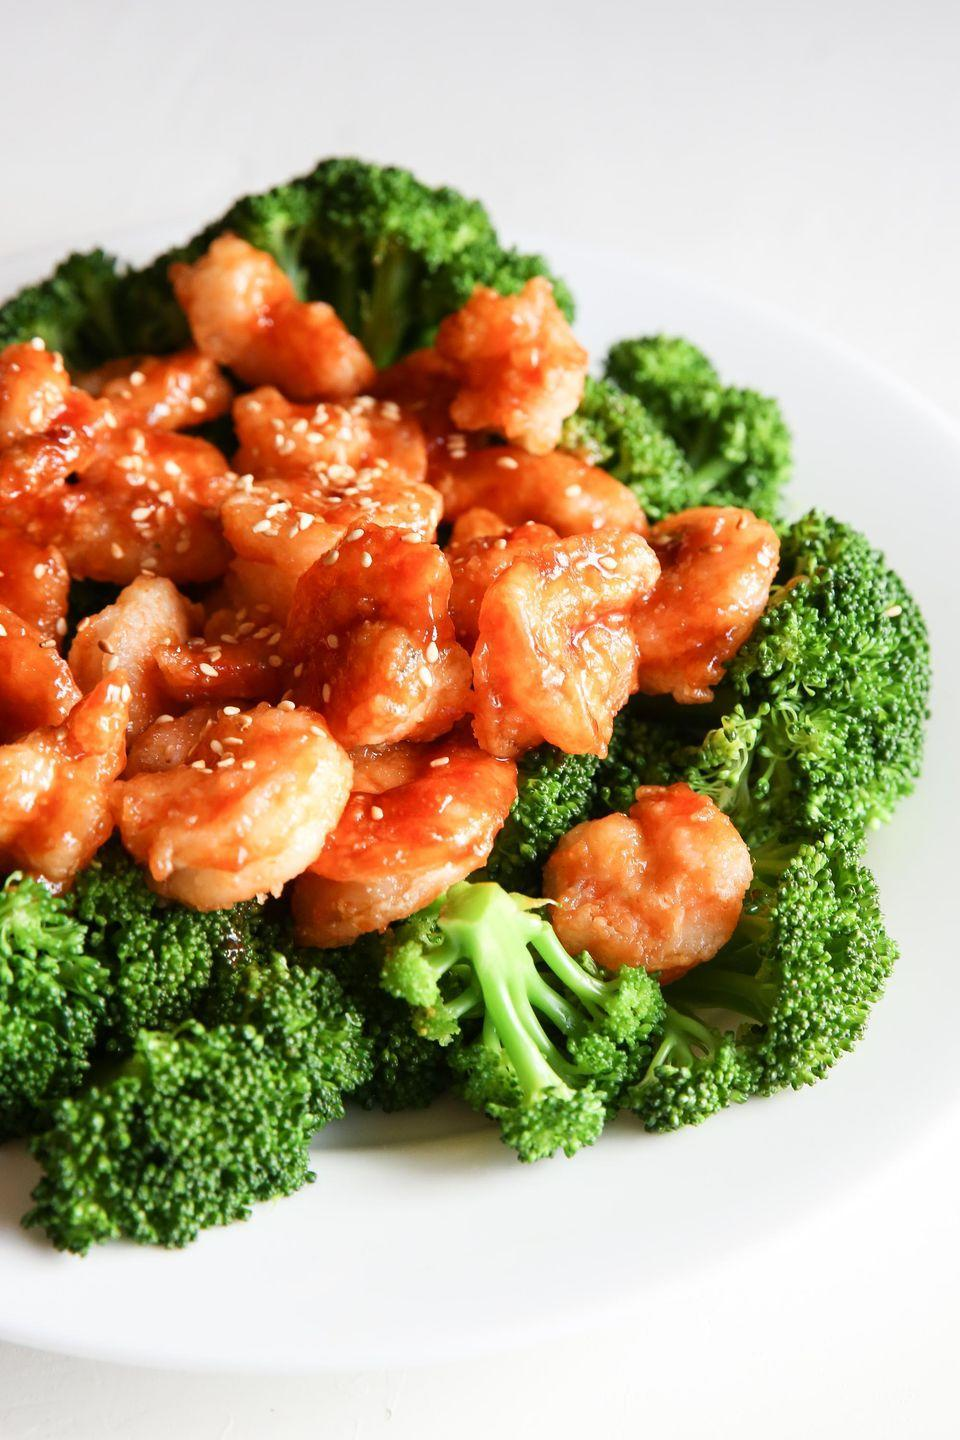 "<p>There's more to life than chicken.</p><p>Get the recipe from <a href=""https://www.delish.com/cooking/recipe-ideas/recipes/a51932/general-tsos-shrimp-and-broccoli/?visibilityoverride"" rel=""nofollow noopener"" target=""_blank"" data-ylk=""slk:Delish"" class=""link rapid-noclick-resp"">Delish</a>.</p>"